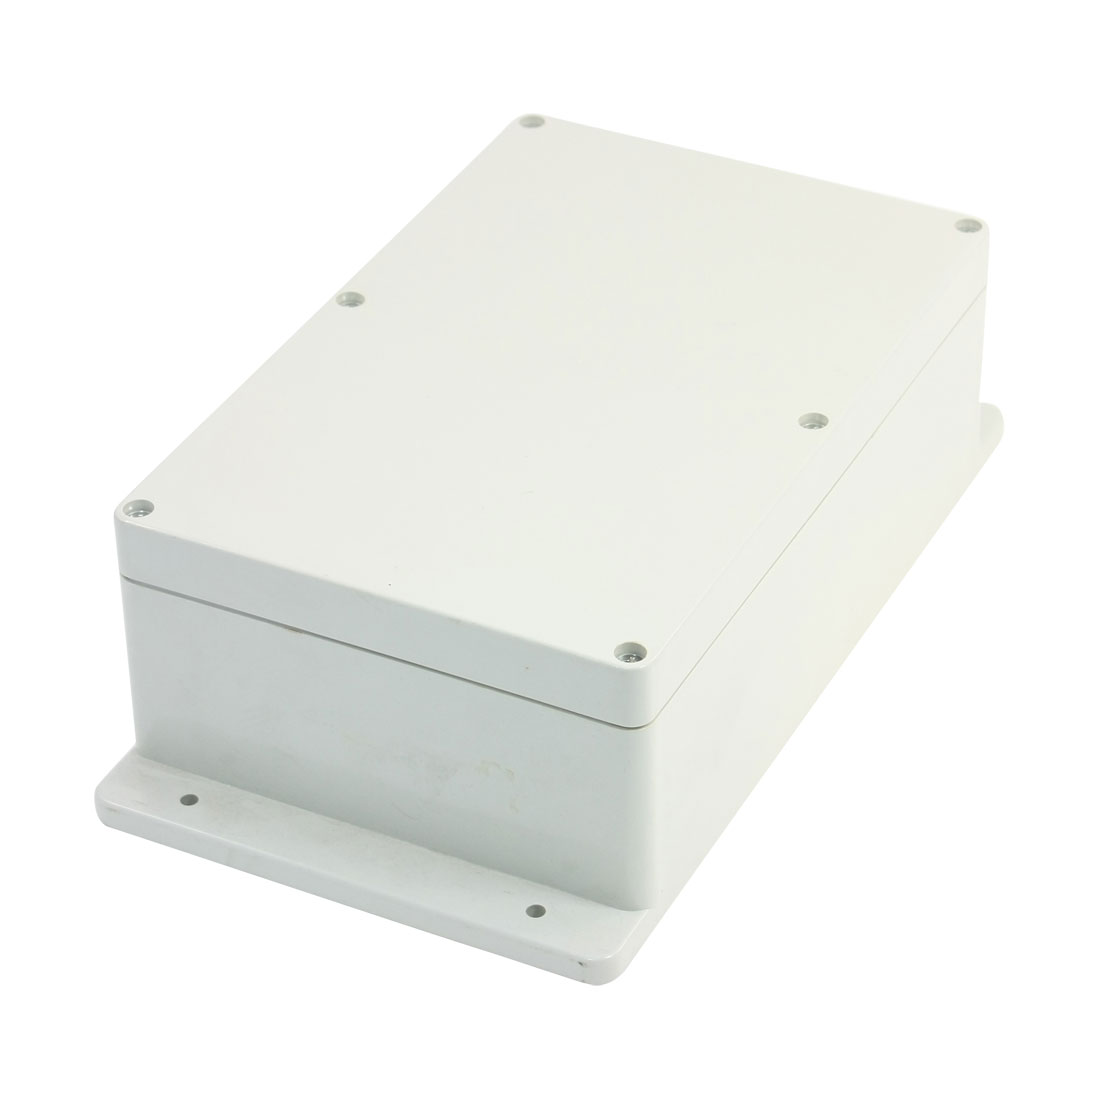 UXCELL 230Mmx150mmx85mm Junction Box Cable Connect Waterproof Plastic Case Enclosure Switching Power Supplies Tool Cable End Cap white waterproof plastic enclosure box electric power junction case 158mmx90mmx46mm with 6pcs screws